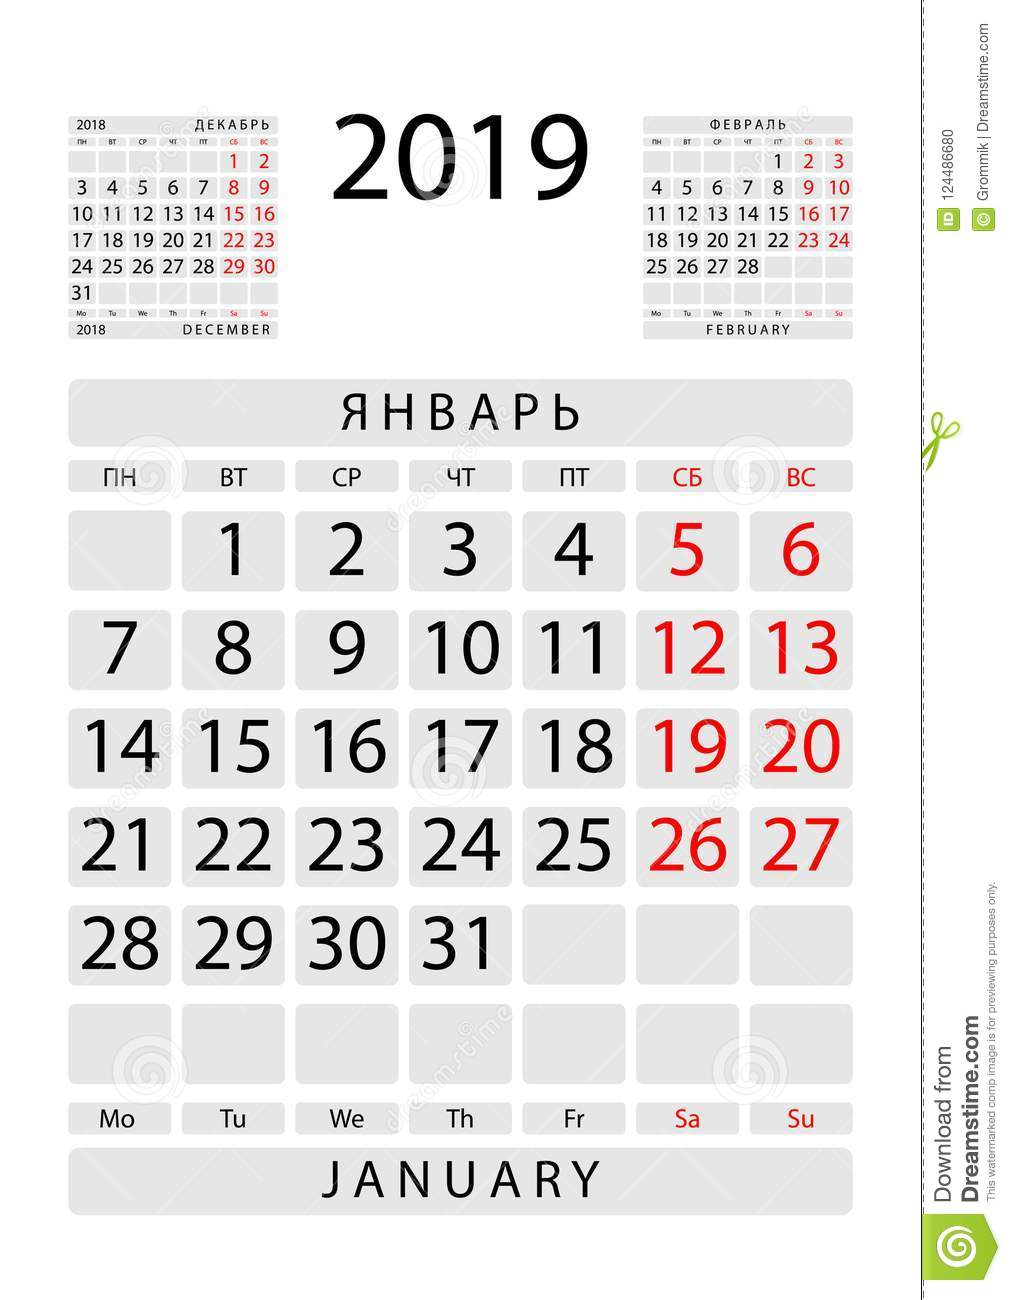 Decorated February Calendars 2019 January 2019. Calendar Sheet From December 2018 And February, Ru